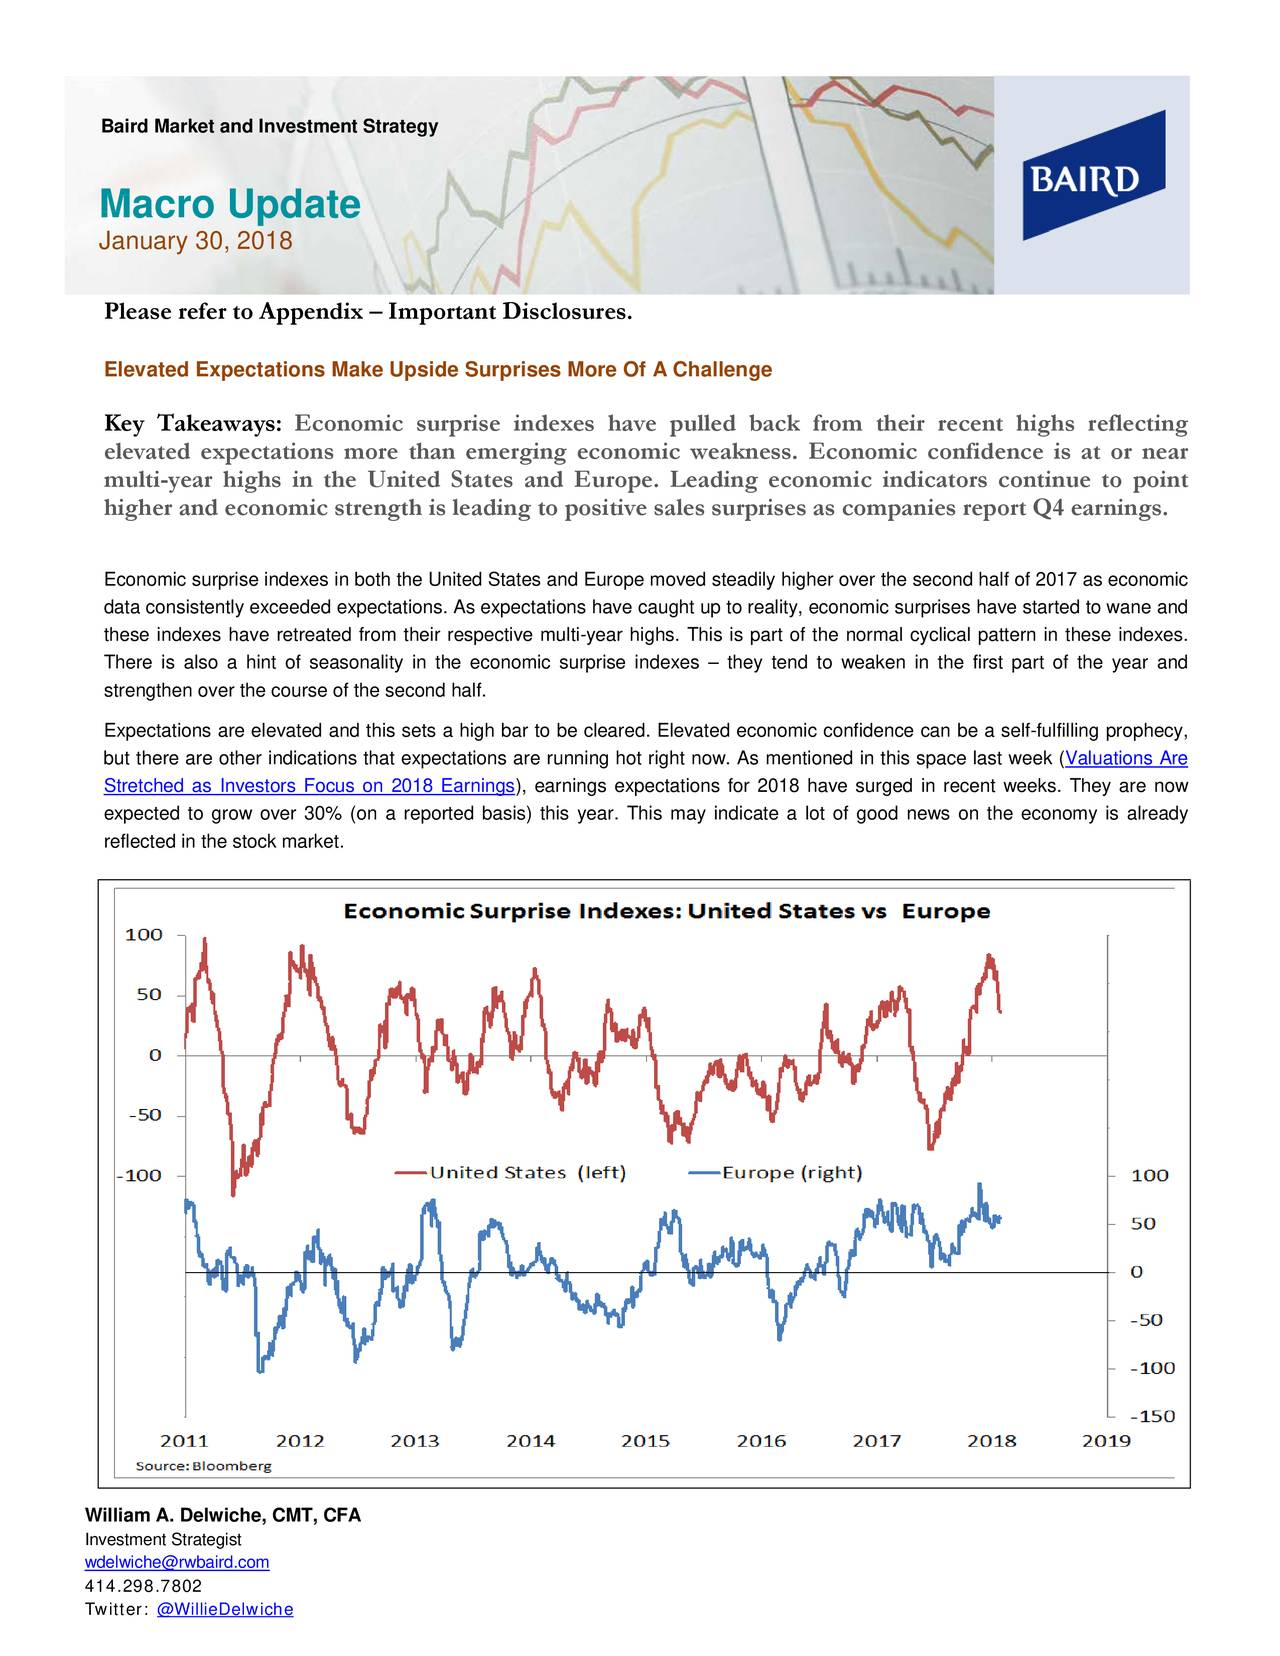 Macro Update January 30, 2018 Please refer to Appendix – Important Disclosures. Elevated Expectations Make Upside Surprises More Of A Challenge Key Takeaway s: Economic surprise indexes have pulled back from their recent highs reflecting elevated expectations more than emerging economic weakness. Economic confidence is at or near multi-year highs in the United States and Europe . Leading economic indicators continue to point higher and economic strength is leading to positive sales surprises as companies report Q4 earnings. Economic surprise indexes in both the United States and Europe moved steadily higher over the second half of 2017 as economic data consistently exceeded expectations. As expectations have caught up to reality, economic surprises have started to wane and these indexes have retreated from their respective multi -year highs. This is part of the normal cyclical pattern in these indexes. There is also a hint of seasonality in the economic surprise inde– they tend to weaken in the first part of the year and strengthen over the course of the second half. Expectations are elevated and this sets a high bar to be cleared. Elevated economic confidence can be a self -fulfilling prophecy, but there are other indications that expectations are running hnow. As mentioned in this space last week (luations Are Stretched as Investors Focus on 2018 Earnings ), earnings expectations for 2018 have surged in recent weeks. They are now expected to grow over 30% (on a reporte d basis) this year. This may indicate a lot of good news on the economy is already reflected in the stock market. William A. Delwiche, CMT, CFA Investment Strategist wdelwiche@rwbaird.com 414.298.7802 Twitter: @WillieDelwiche